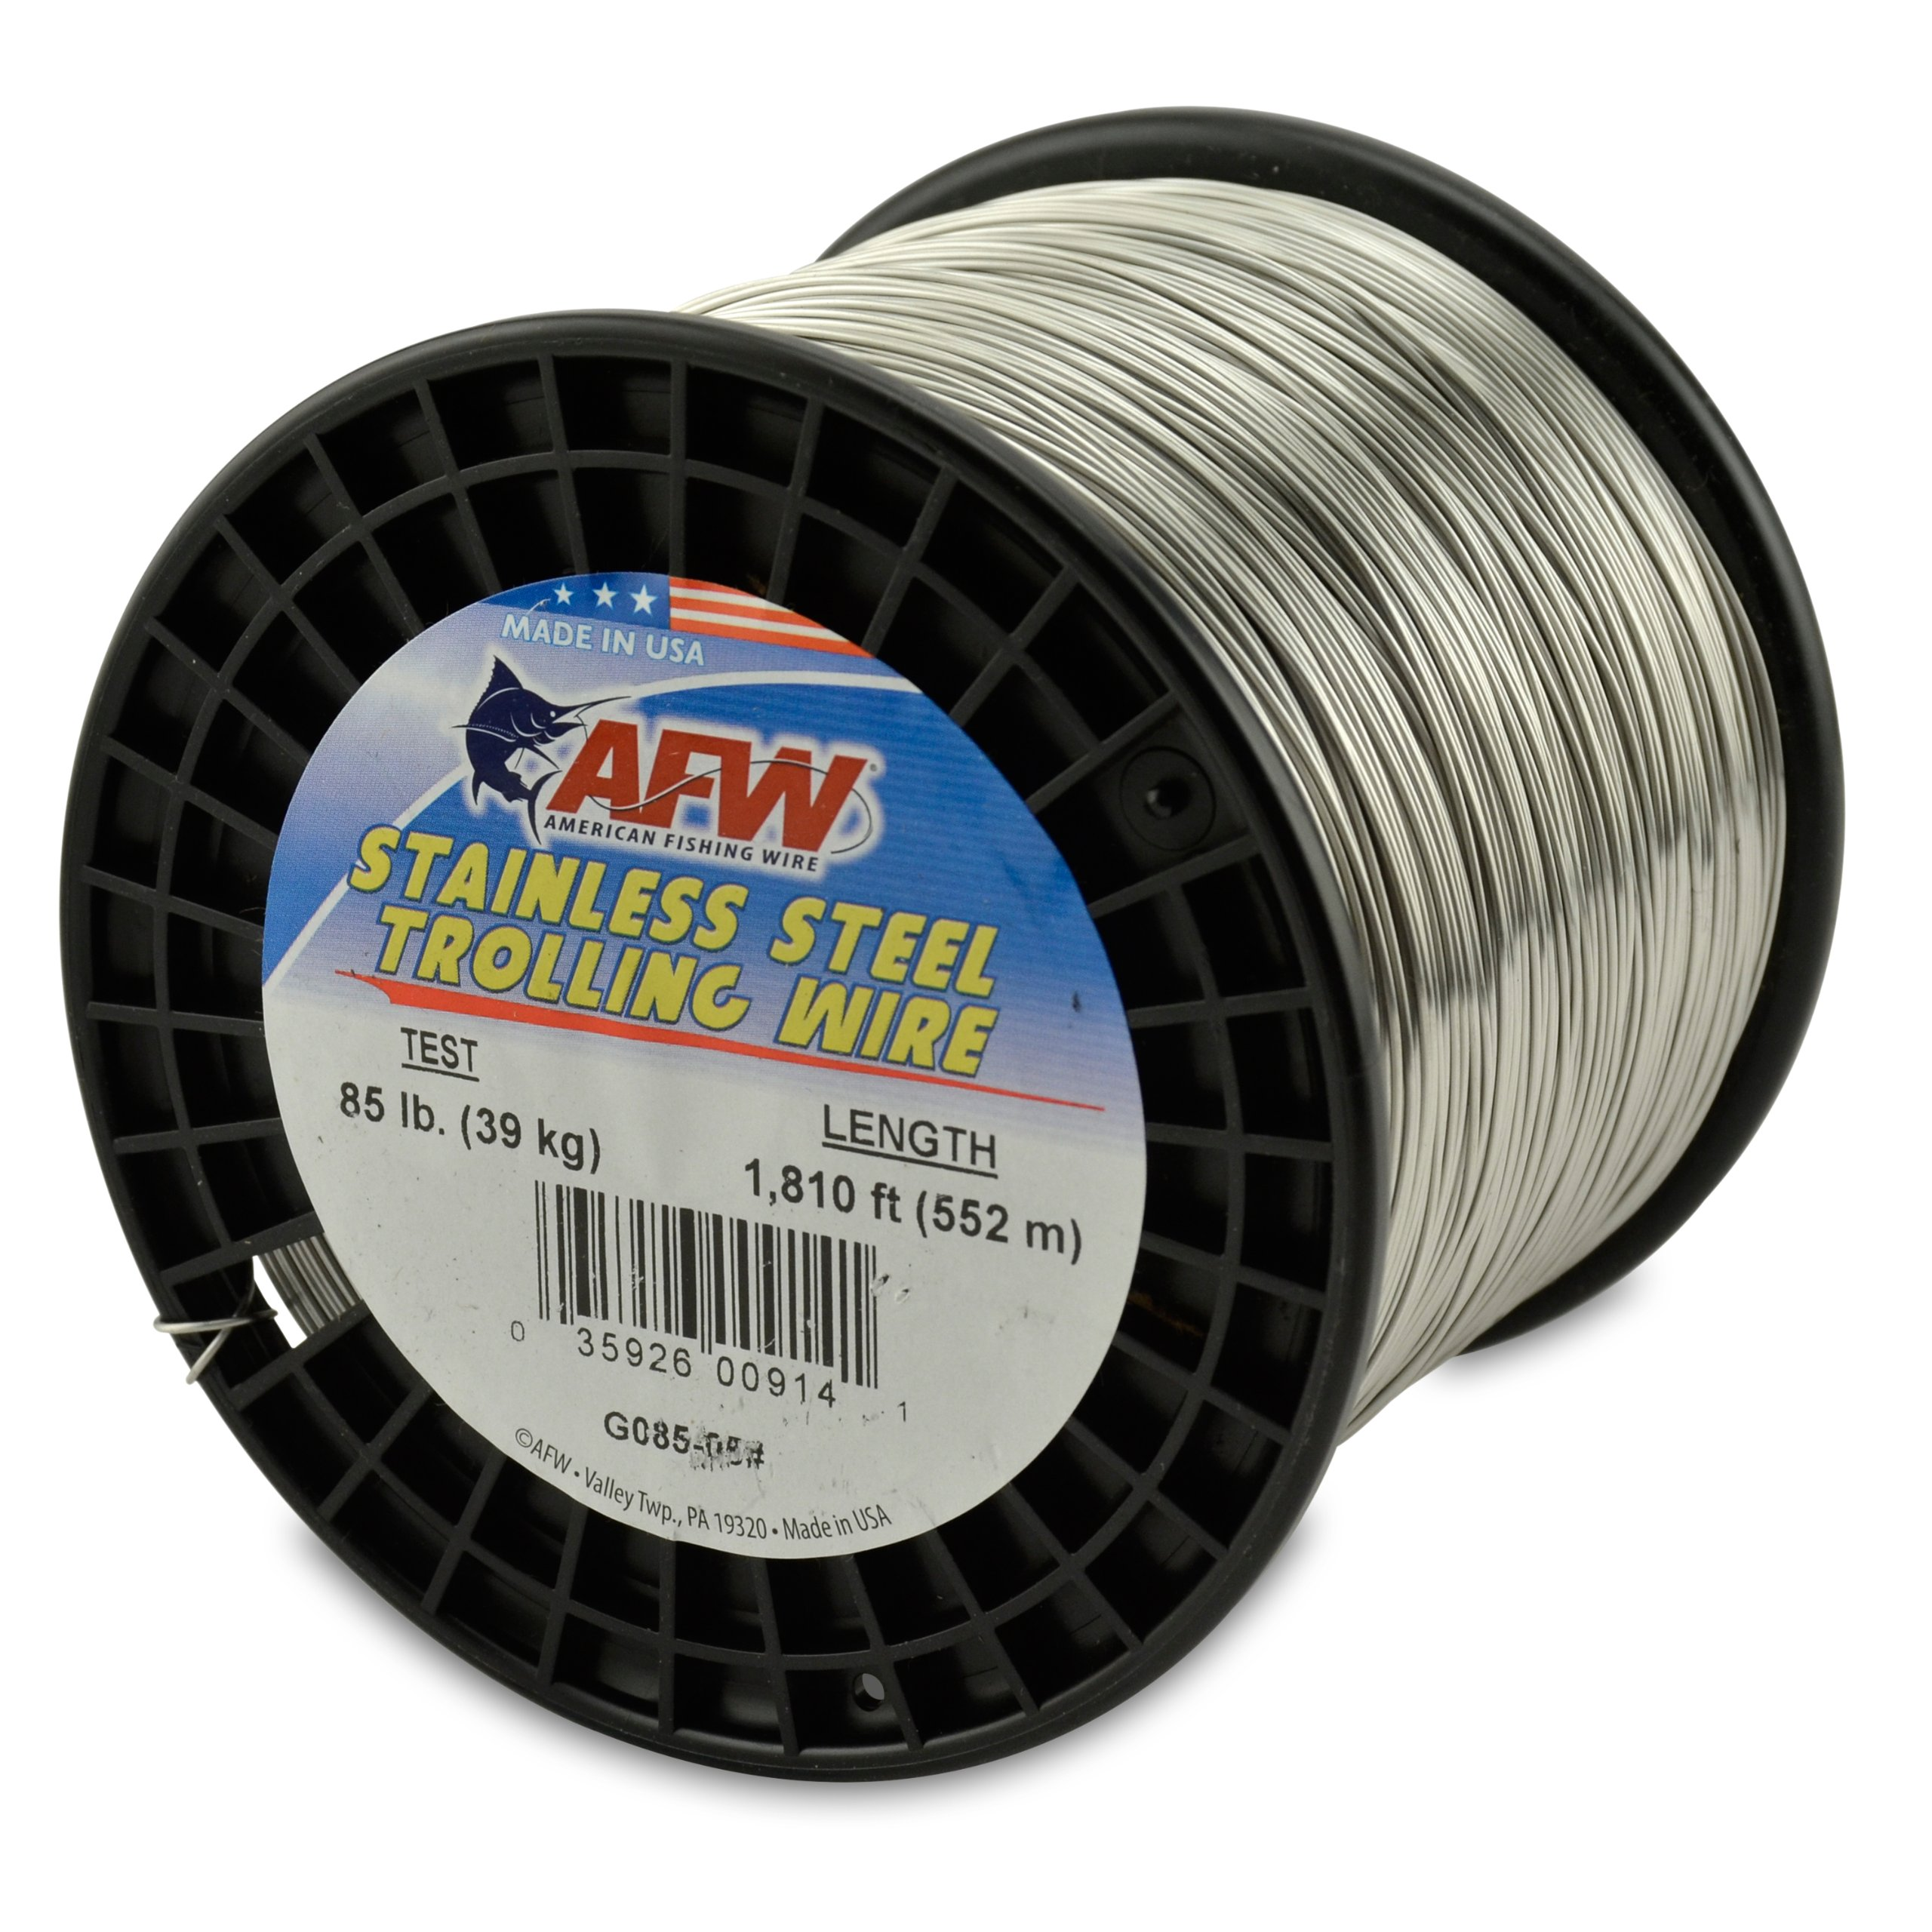 American Fishing Wire Stainless Steel Trolling Wire, 85-Pound Test/0.81mm Dia/551m by American Fishing Wire